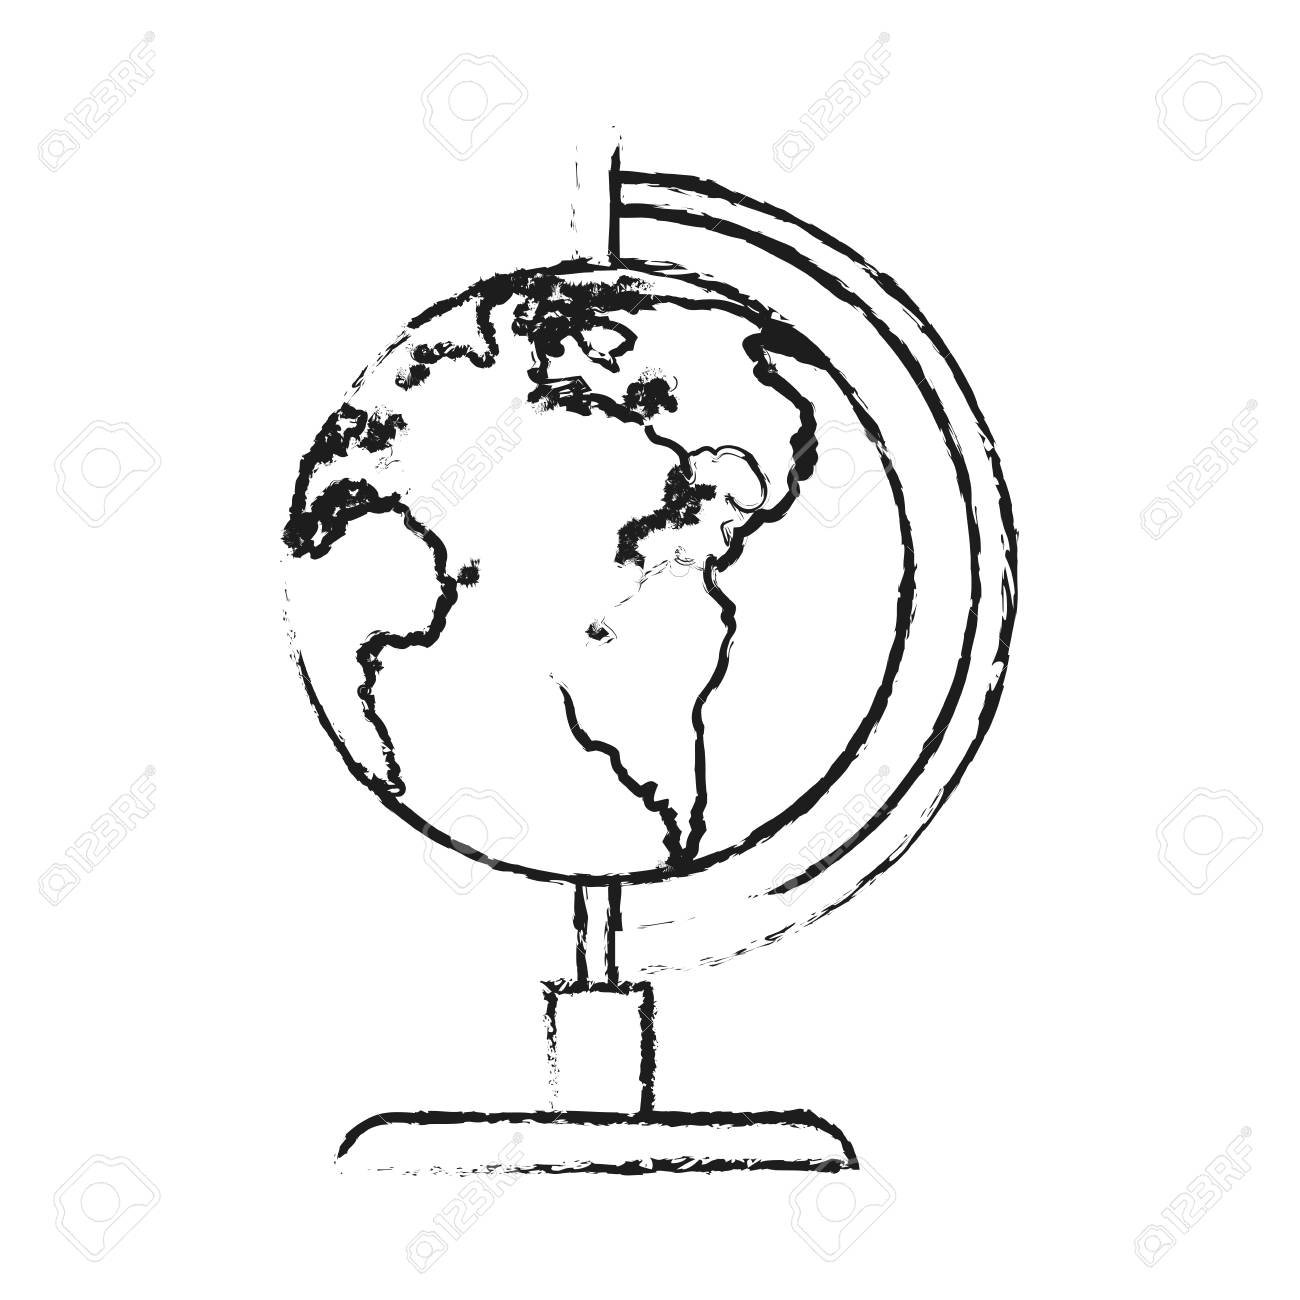 1300x1300 Blurred Silhouette Image Cartoon Earth Globe Vector Illustration